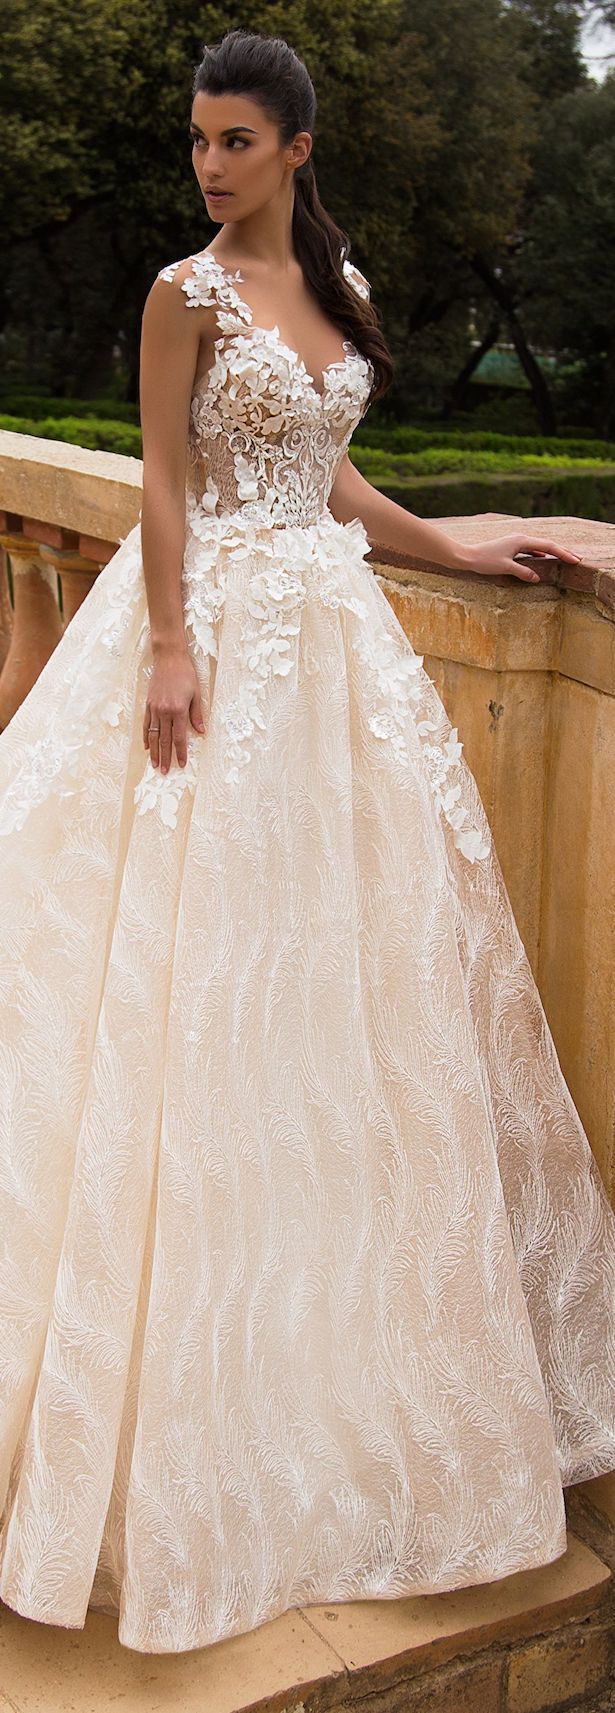 Wedding Dress by Milla Nova White Desire 2017 Bridal Collection - Mabela